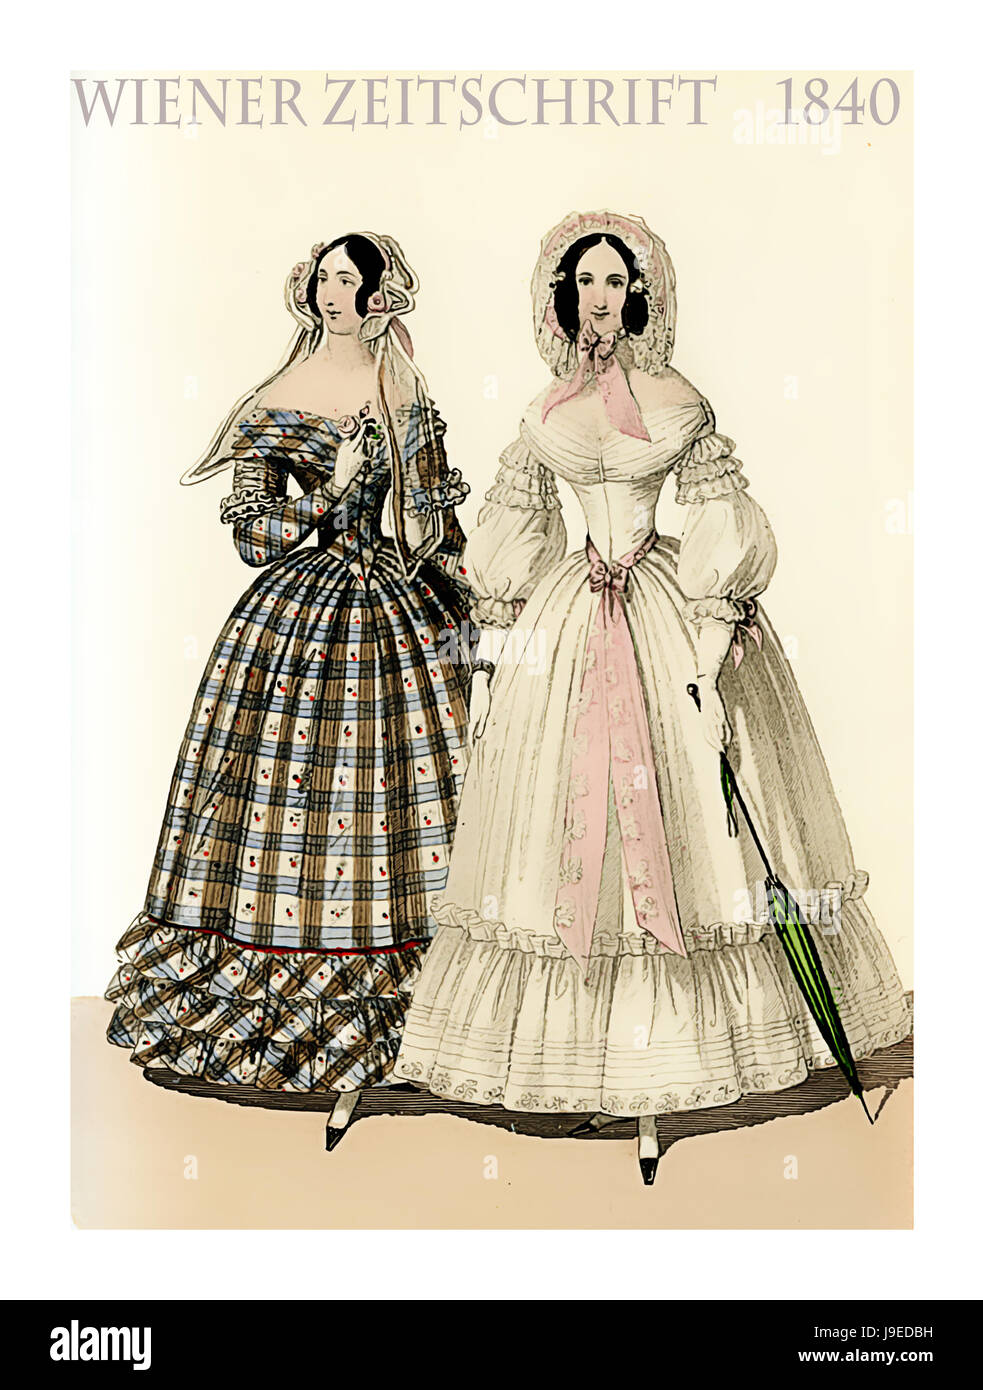 Vienna 1840 fashion, two young ladies fancy dressed with hats and parasol ready to go outside, vintage illustration - Stock Image